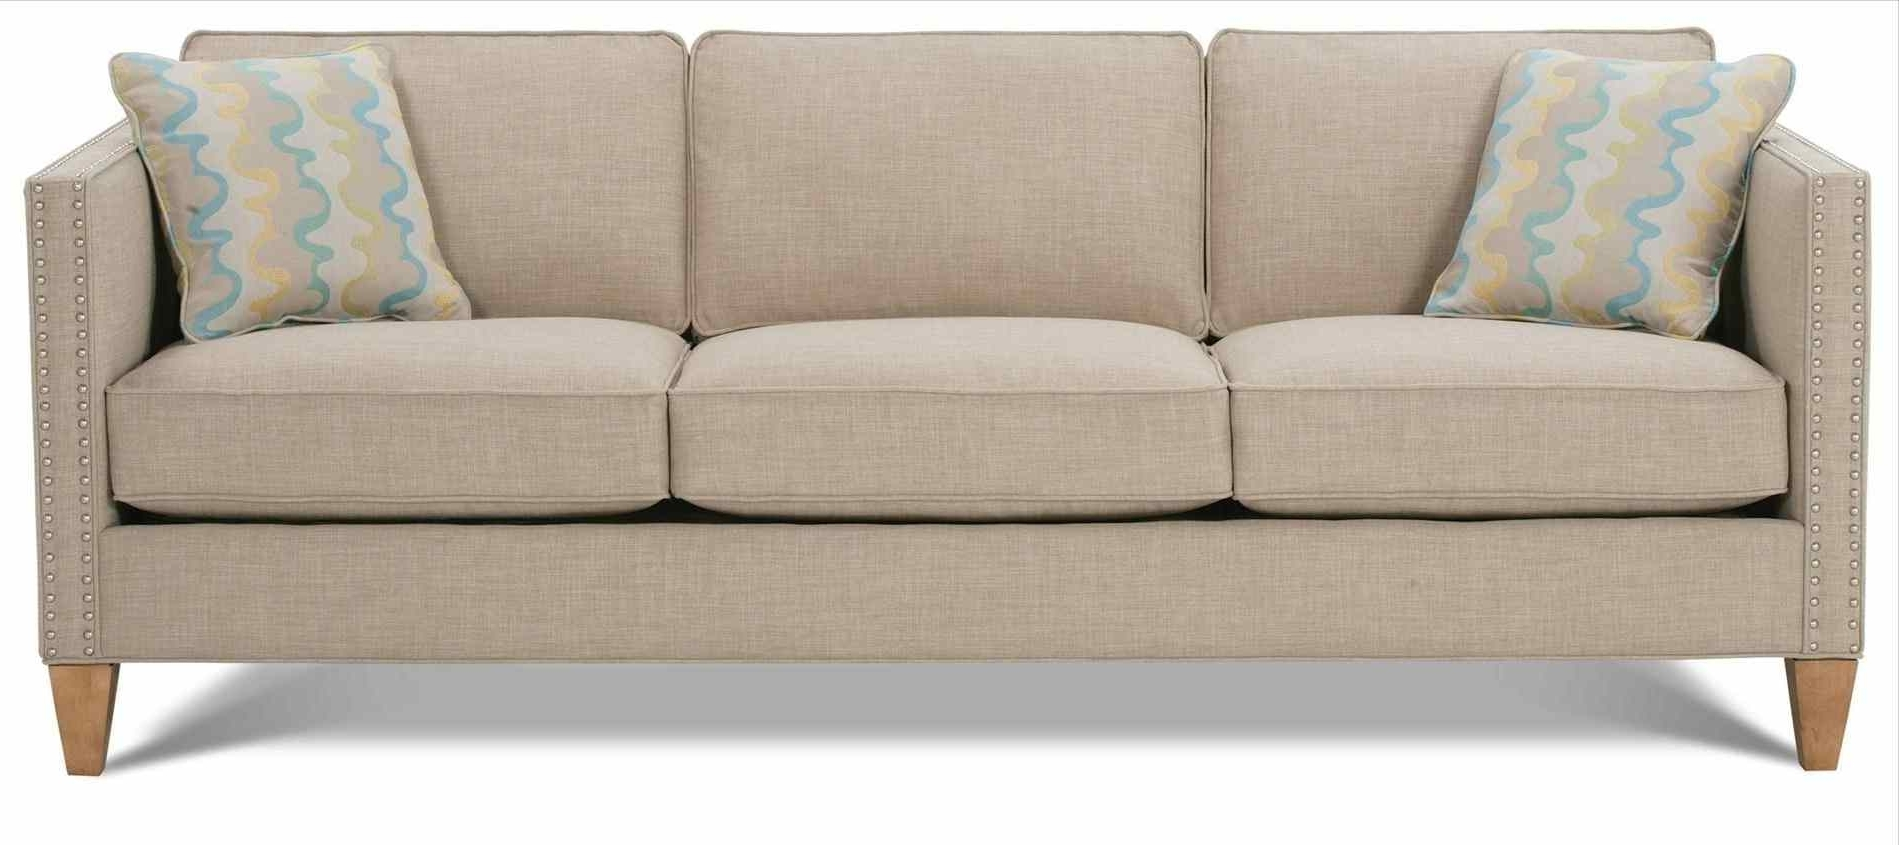 Well Liked Sofa : Grey Lounge Furniture Out U Best Collection Of S Best Throughout Modern 3 Seater Sofas (View 7 of 20)